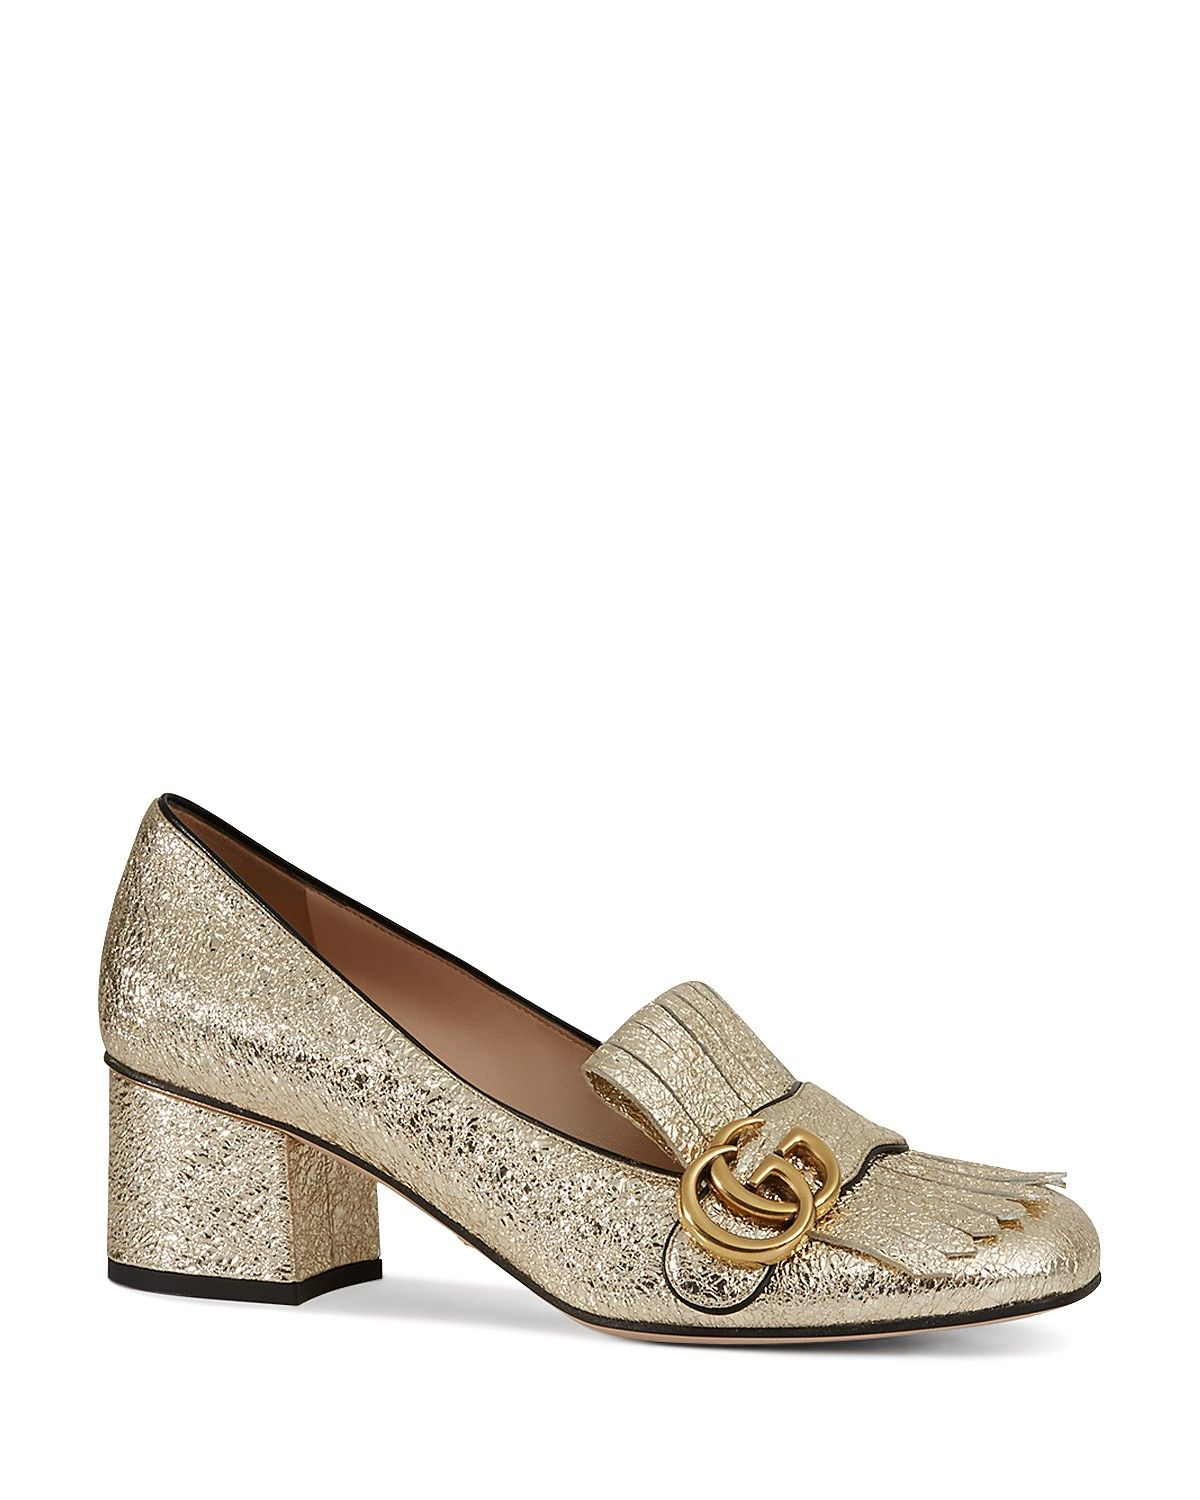 Gucci Marmont Metallic Mid Heel Loafers